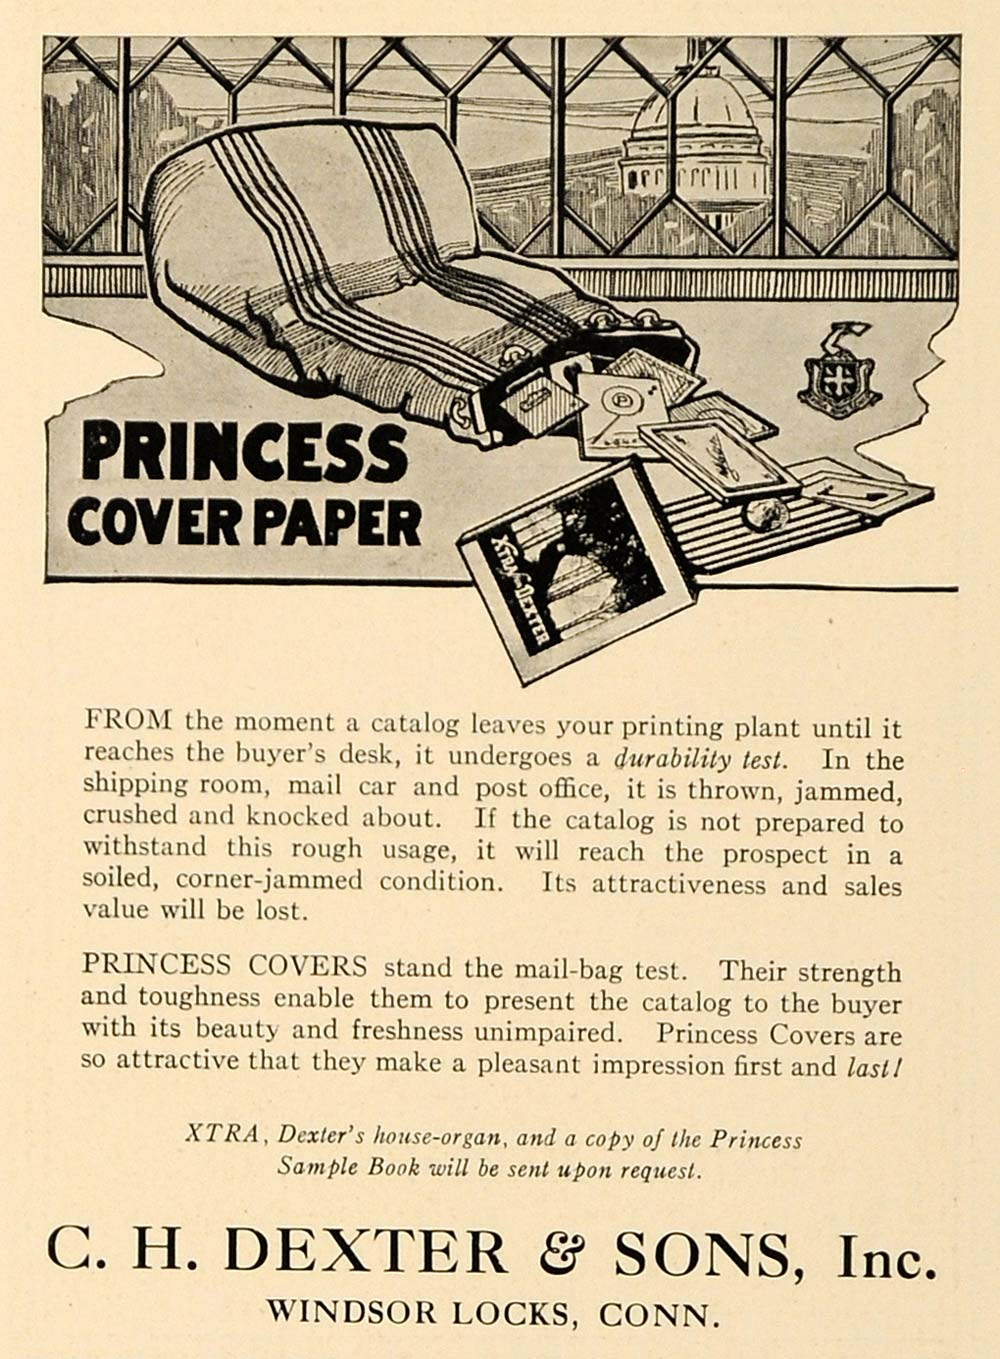 1920 Ad Princess Covering Papers Durability Dexter Sons - ORIGINAL IPR1